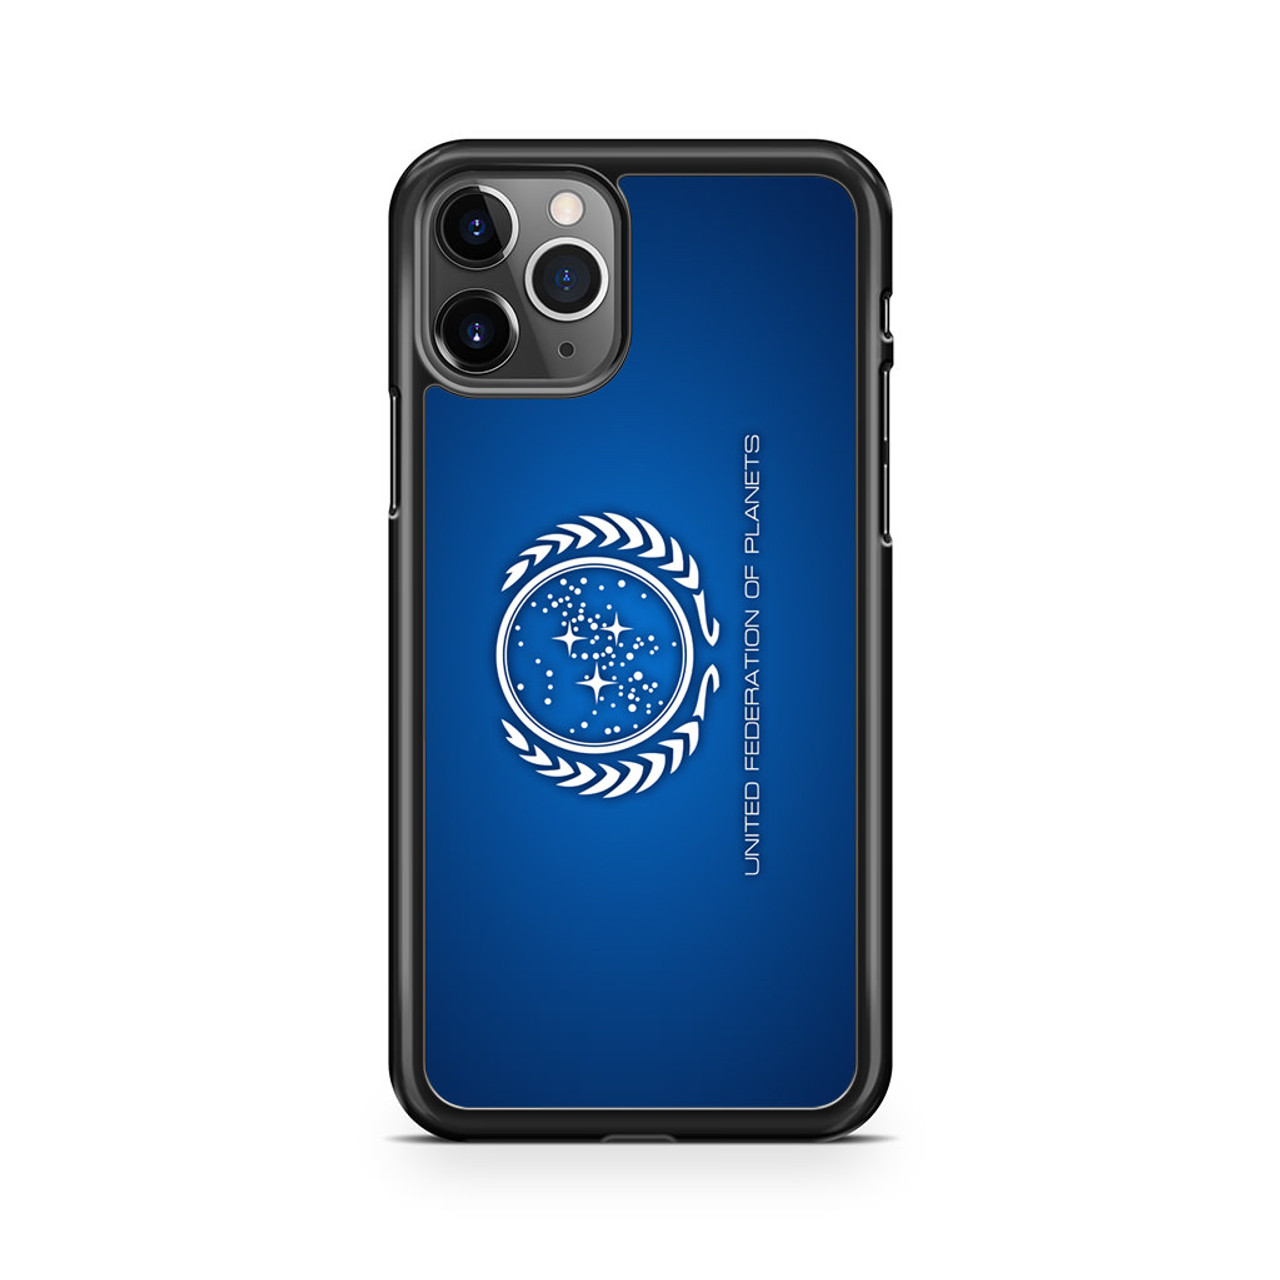 Planets iPhone 11 case